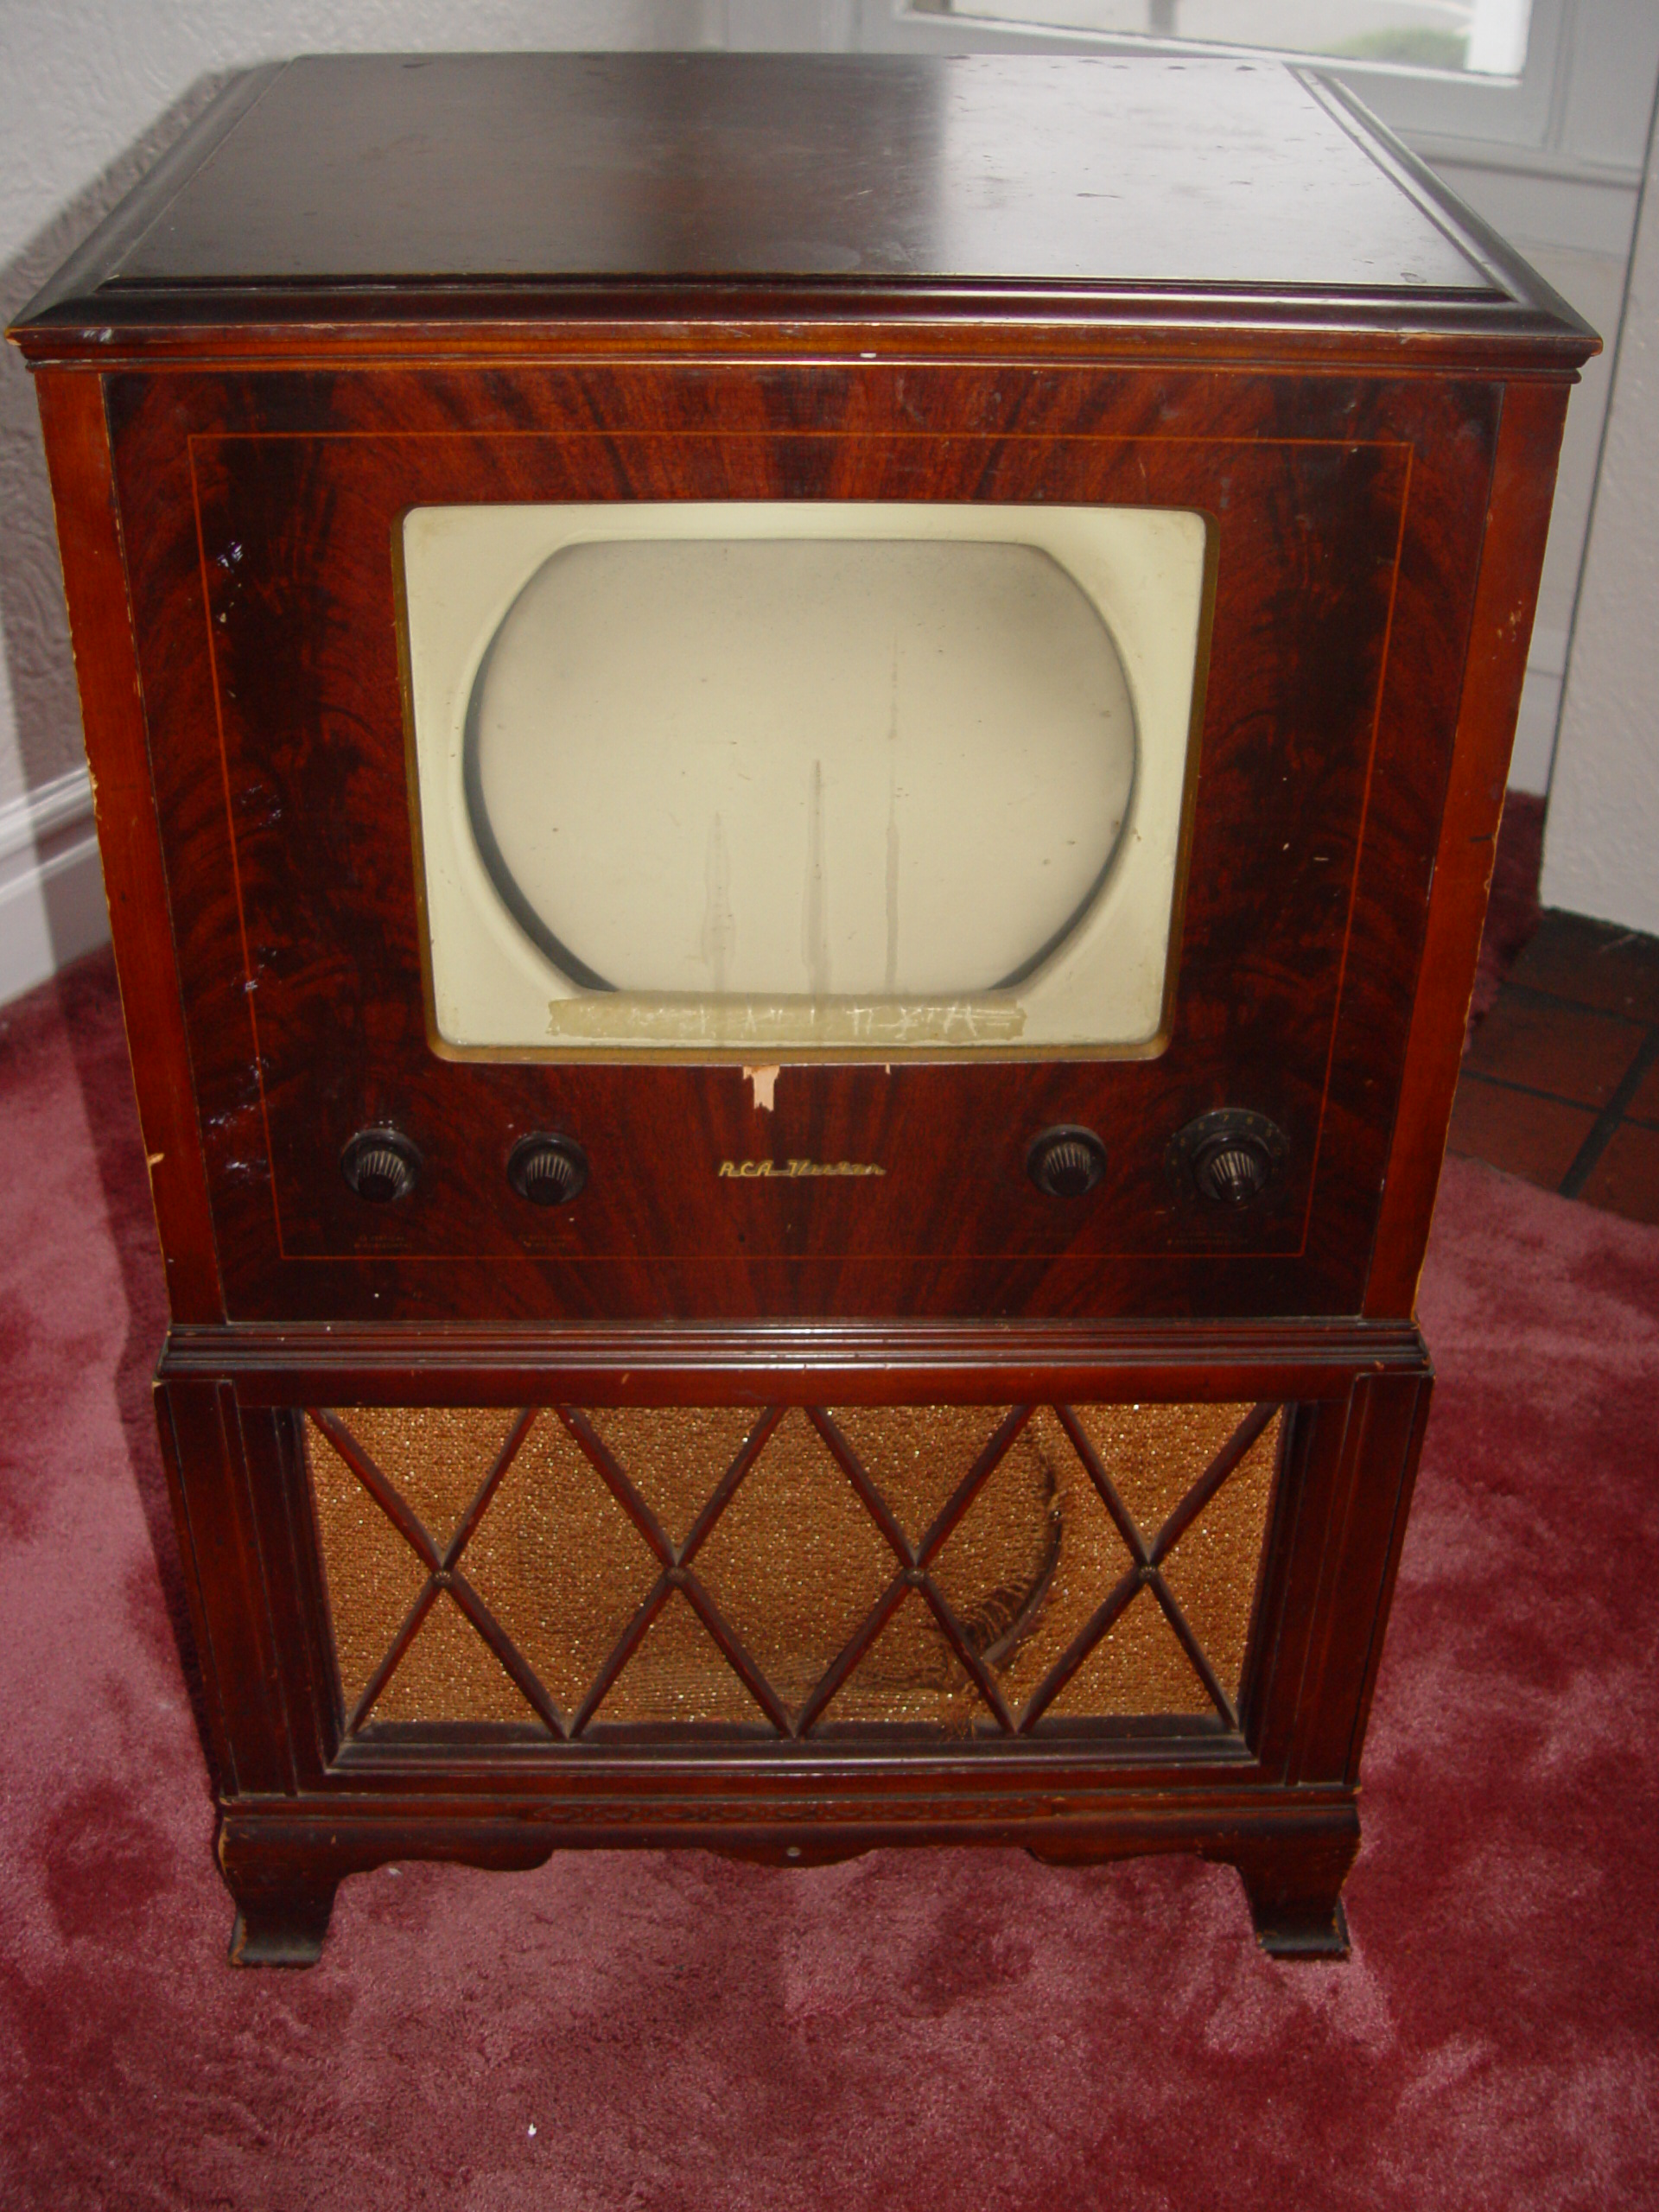 1949 Rca Victor Tv Model 9 Tc 247 K Antique Appraisal